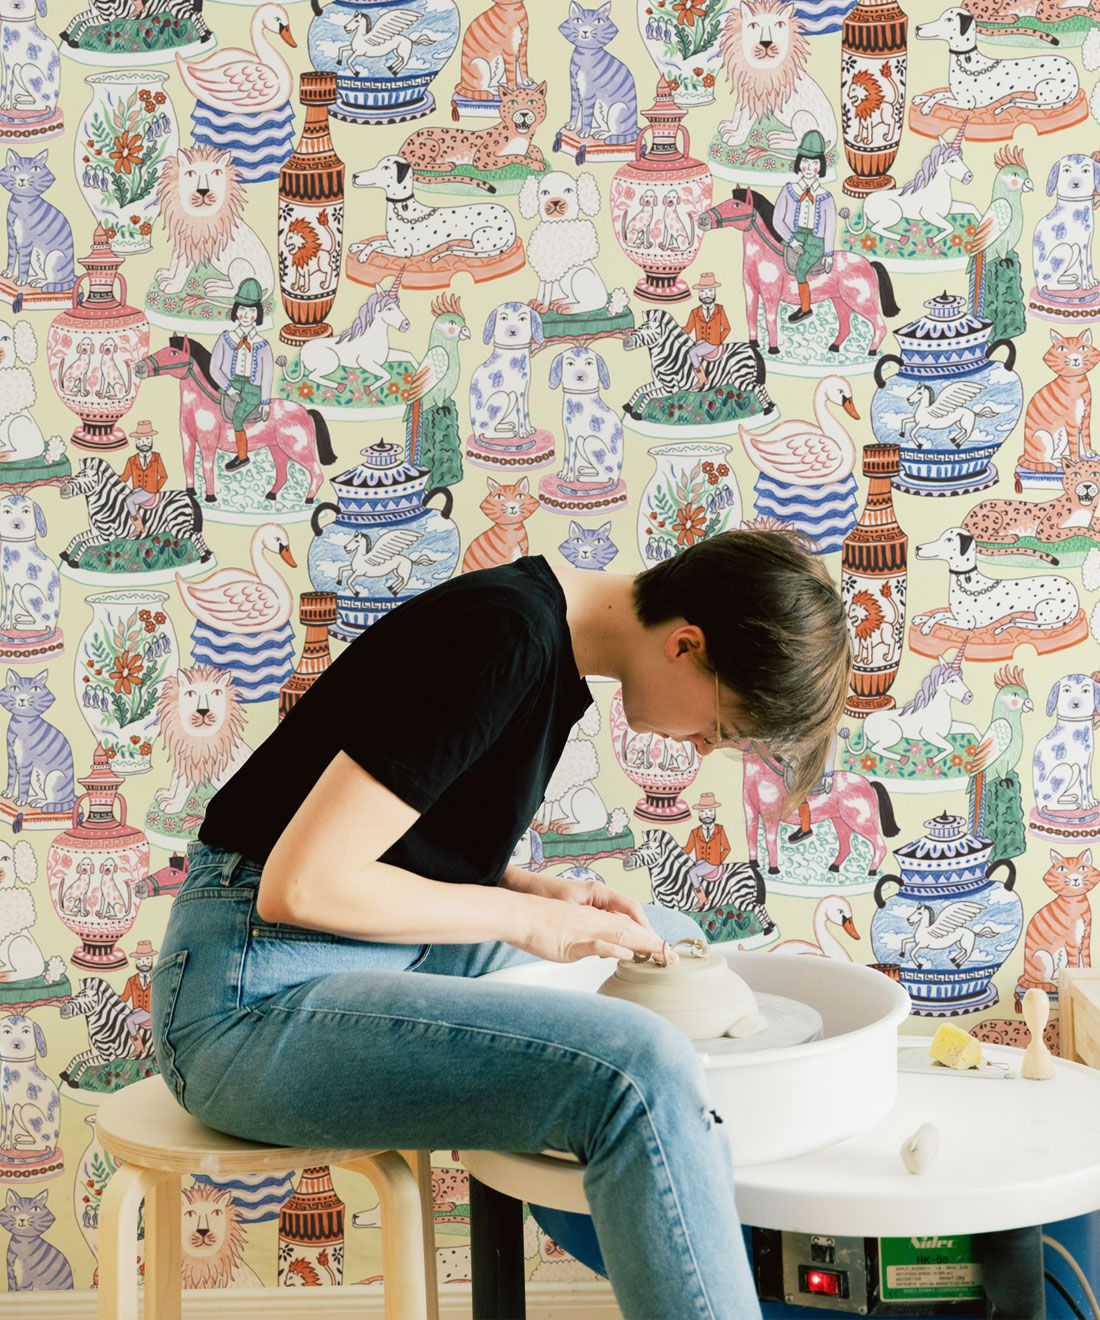 Ceramics Wallpaper featuring vases of dogs, cats, zebras, lions, parrots and unicorns insitu